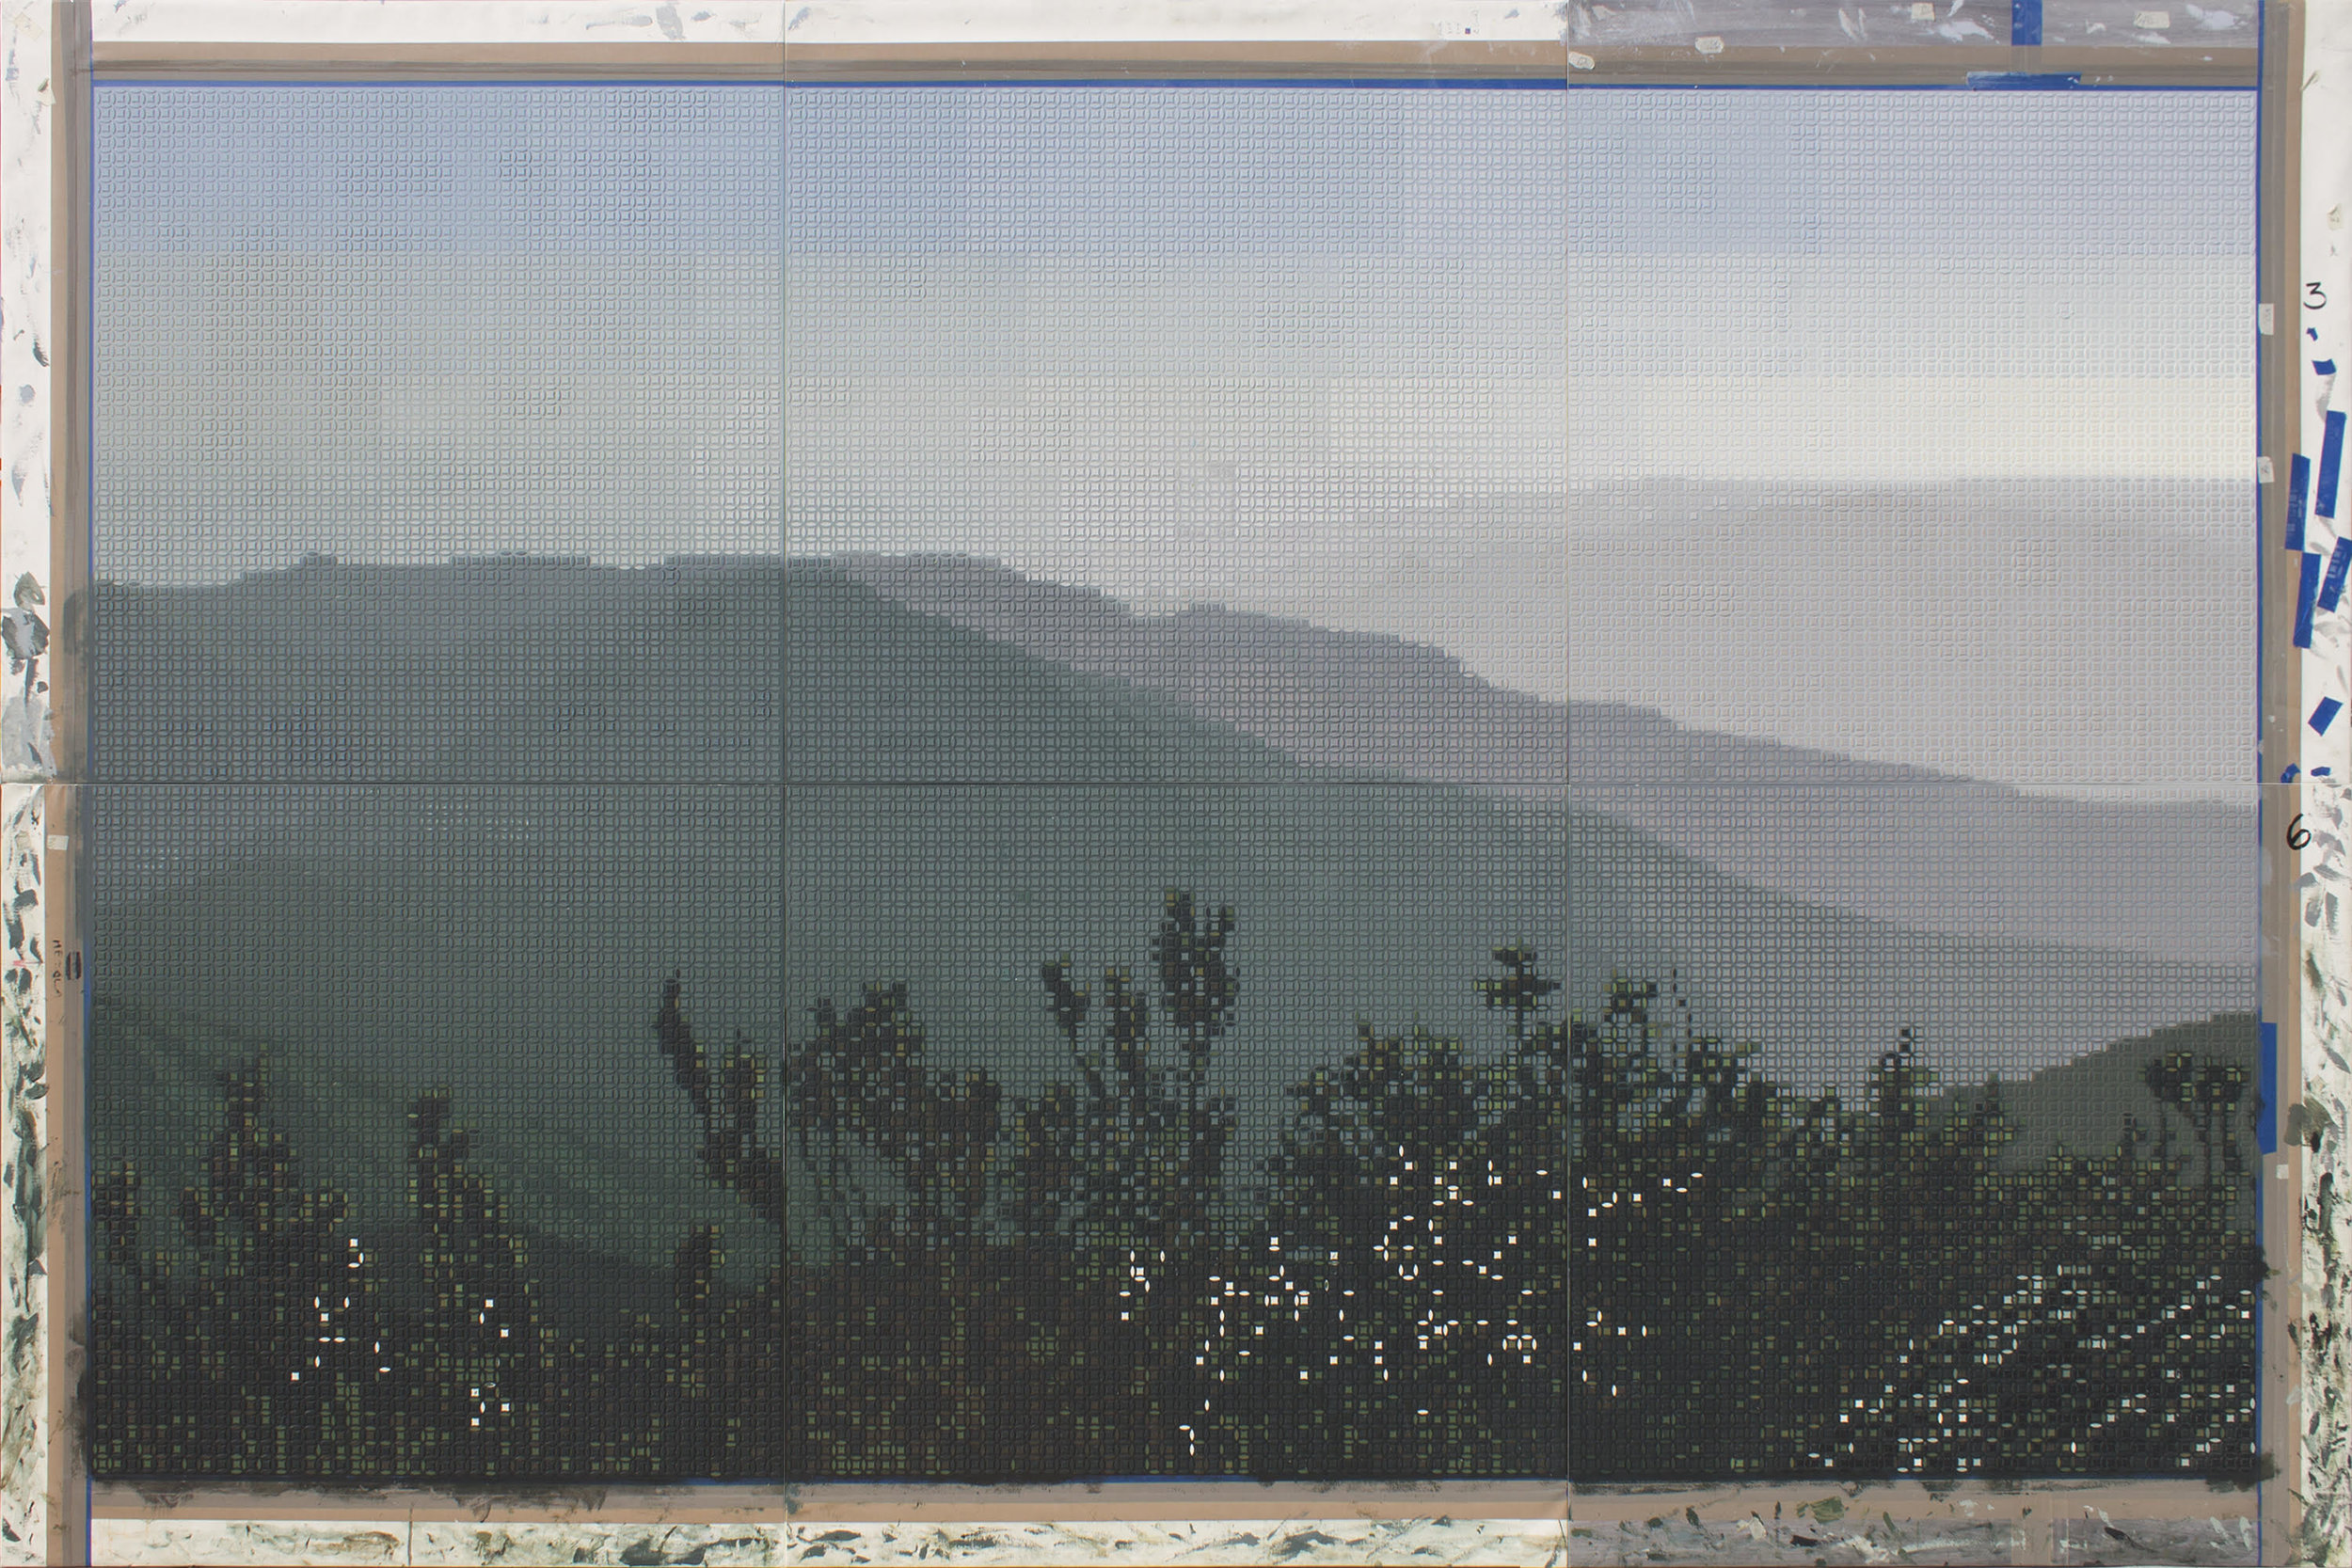 Fig. 2: Roger Toledo Bueno,  Amanecer en el Pico Turquino  ( Sunrise at Pico Turquino ), 2018, Acrylic on canvas, 78 3/4 x 118 inches (200 x 300 cm); Comprised by six panels of 39 3/8 x 39 3/8 inches (100 x 100 cm).